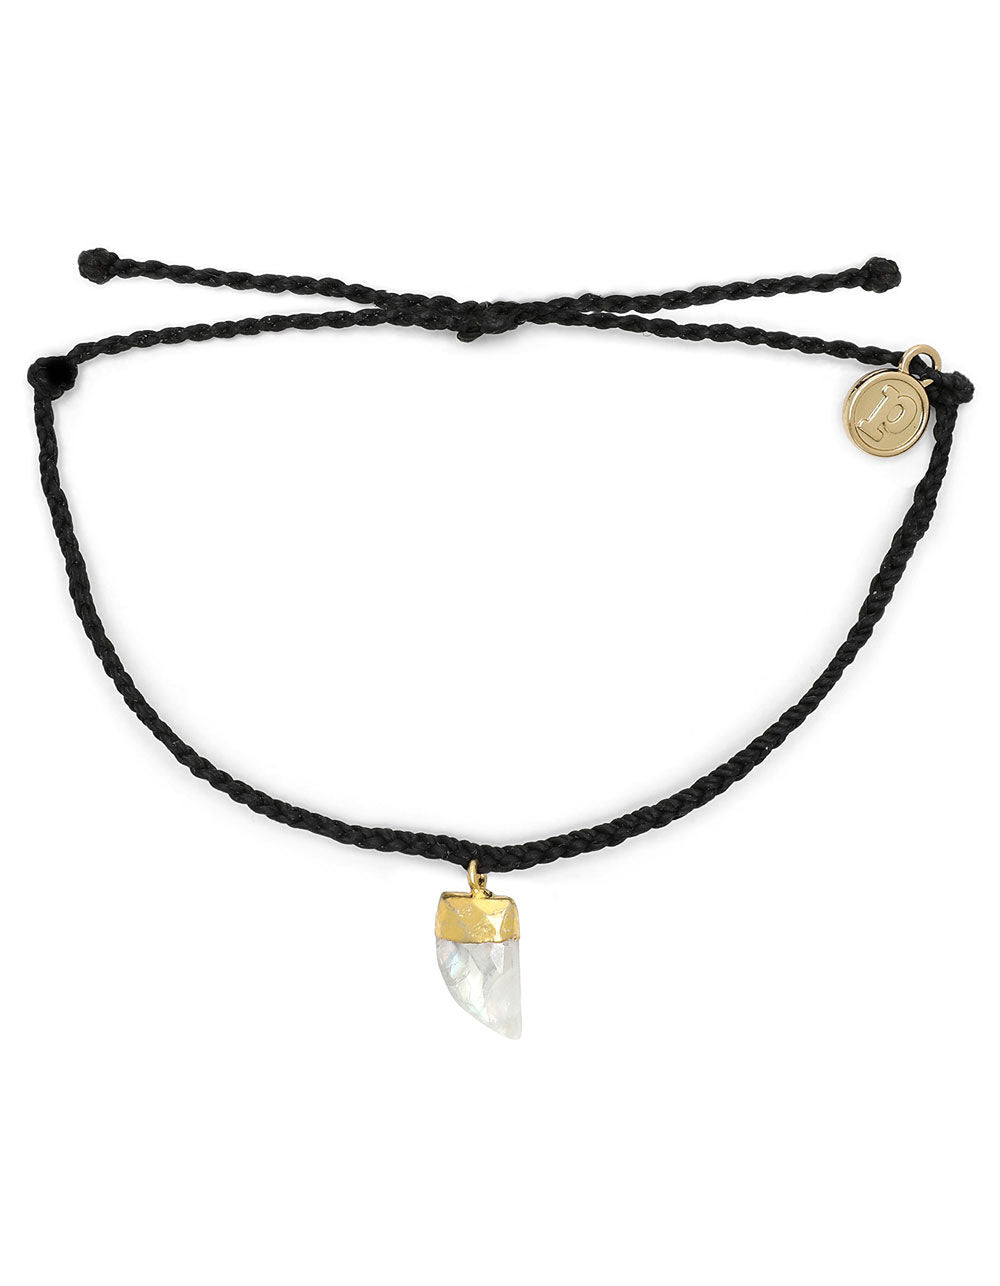 Stone Shark Tooth Charm Bracelet by Pura Vida - Black